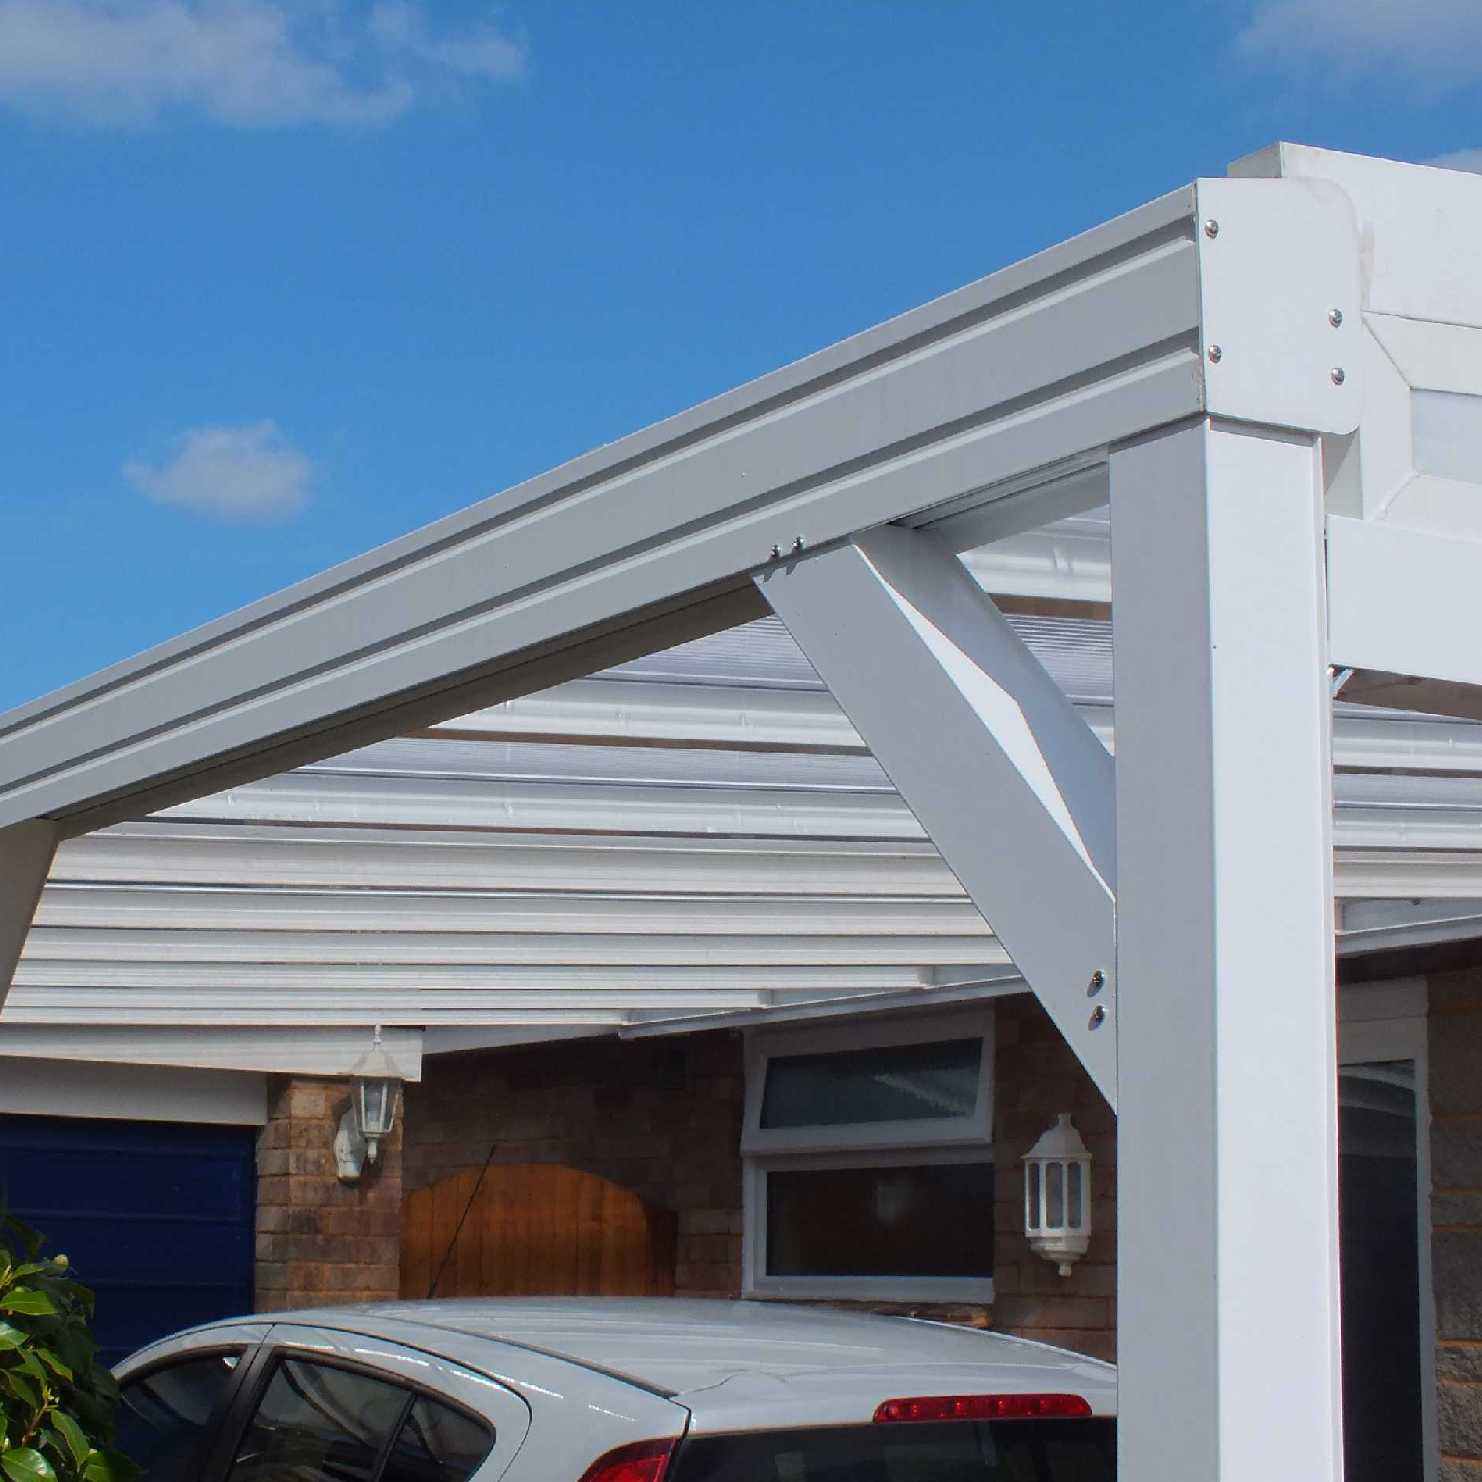 Great deals on Omega Smart White Lean-To Canopy with 16mm Polycarbonate Glazing - 2.1m (W) x 2.5m (P), (2) Supporting Posts